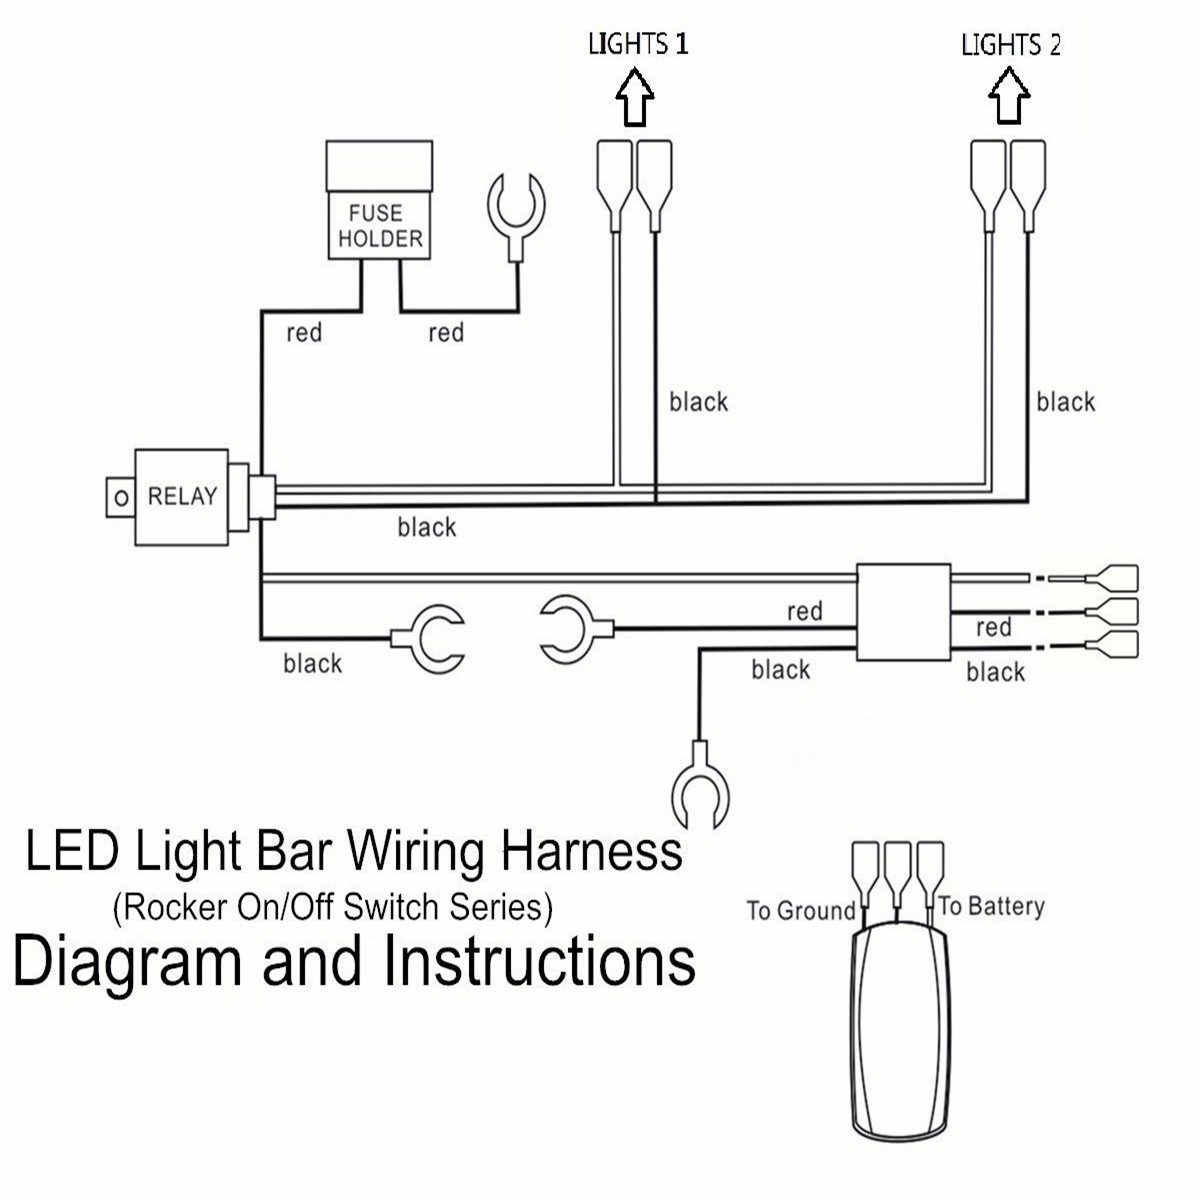 hight resolution of matcc 12v 300w led rocker switch light bar wiring harness on off laser 40a relay 30a